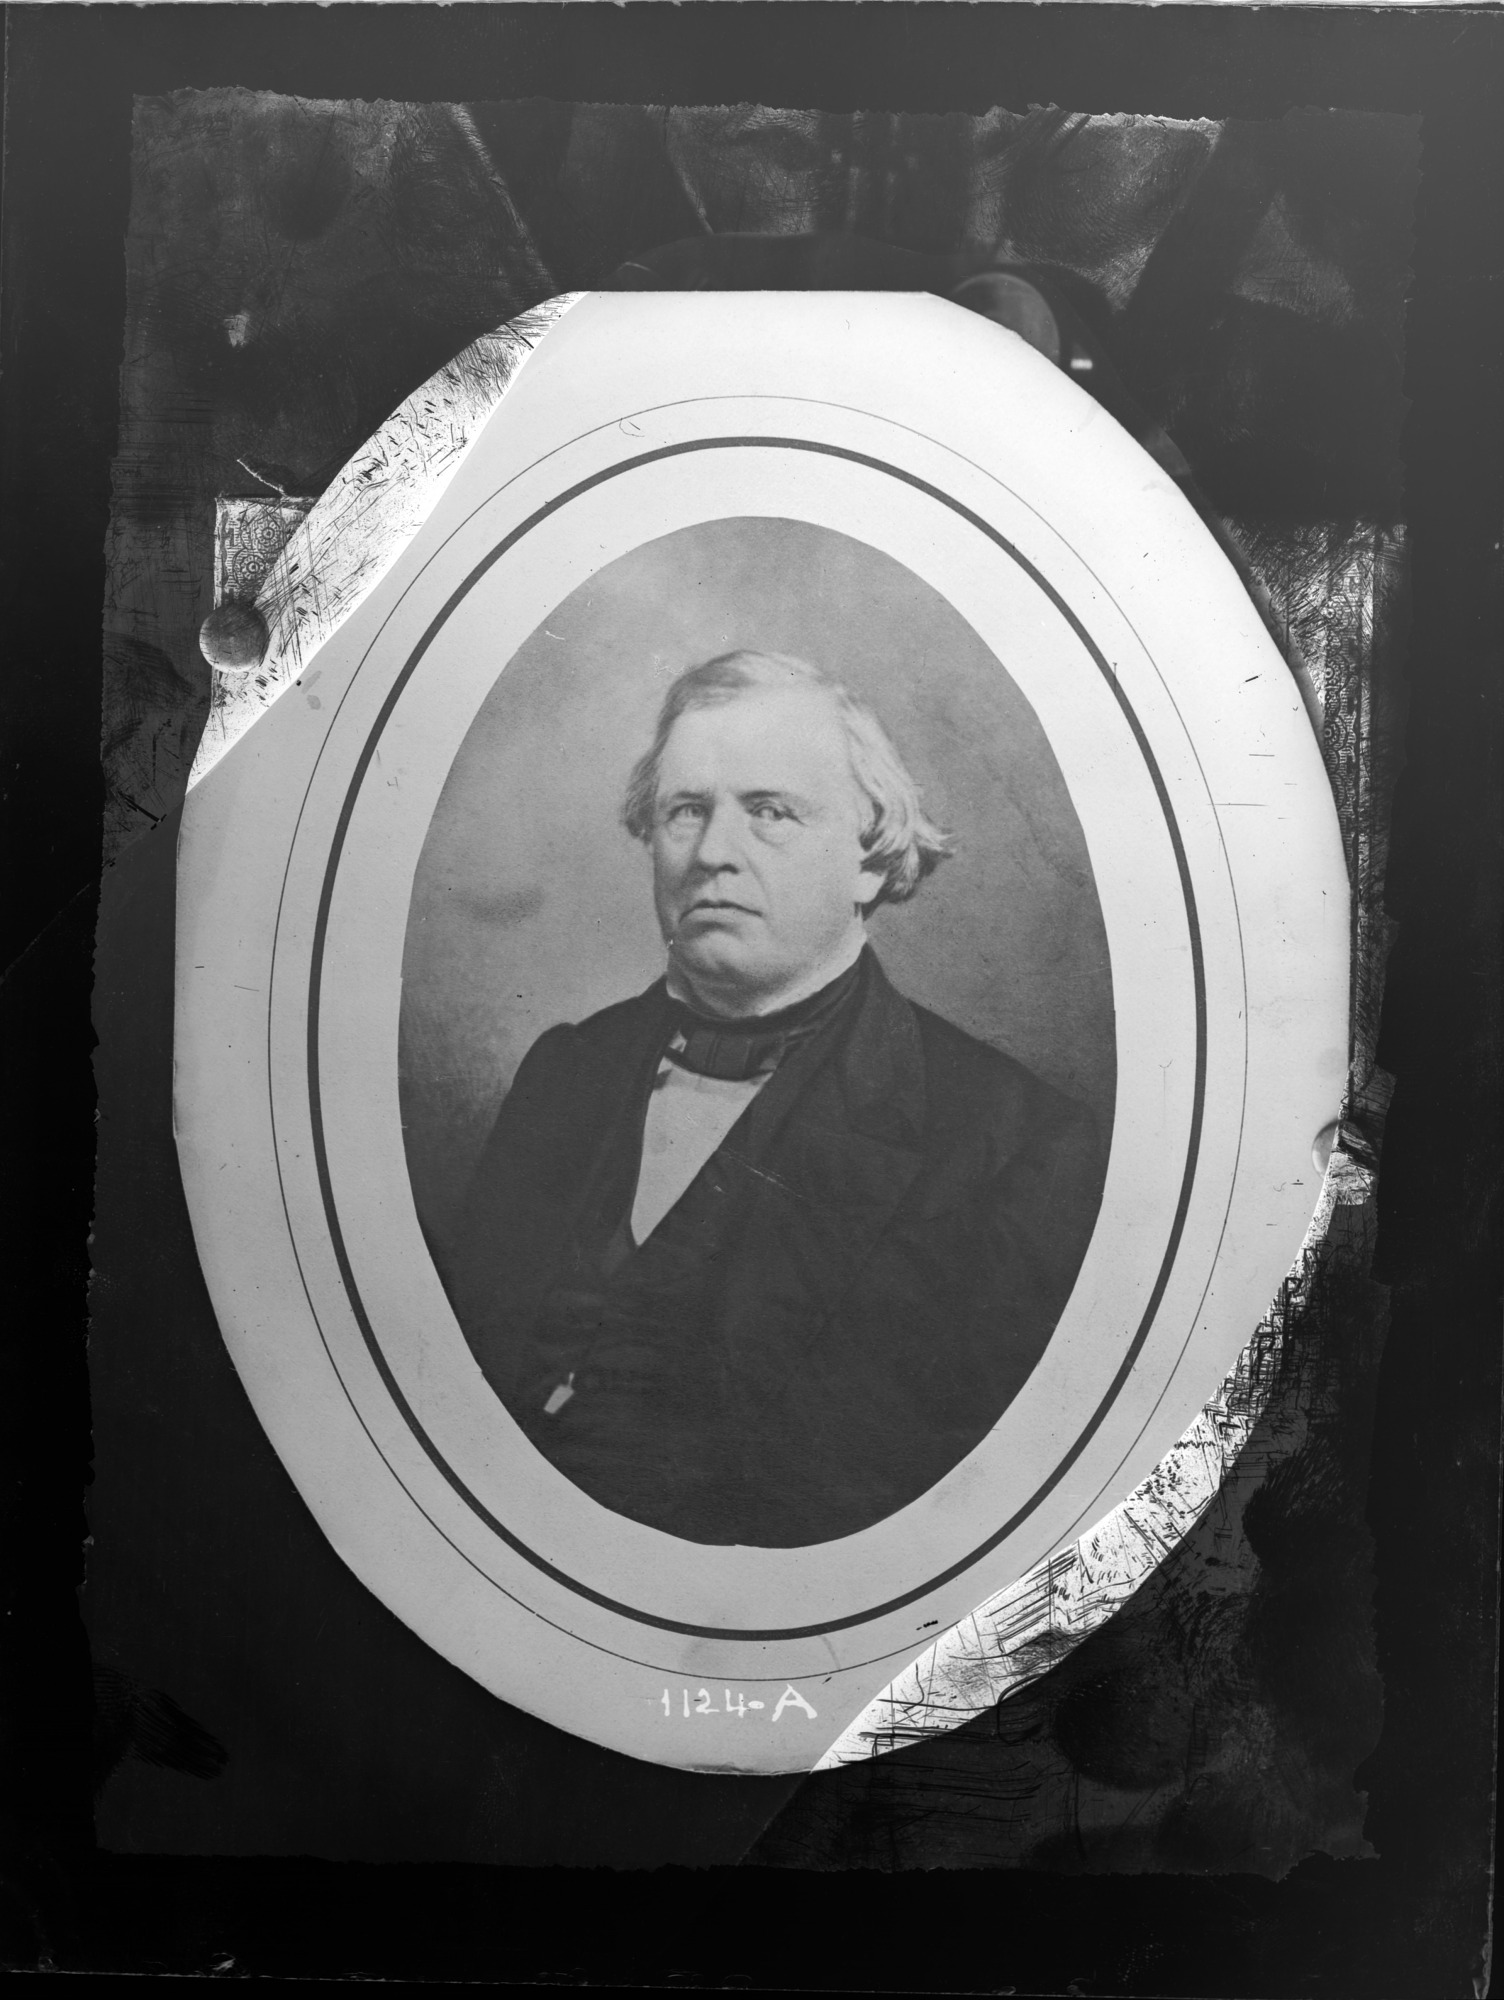 Portrait of Unidentified Man, 1880, Smithsonian Institution Archives, SIA Acc. 11-006 [MAH-1124A].